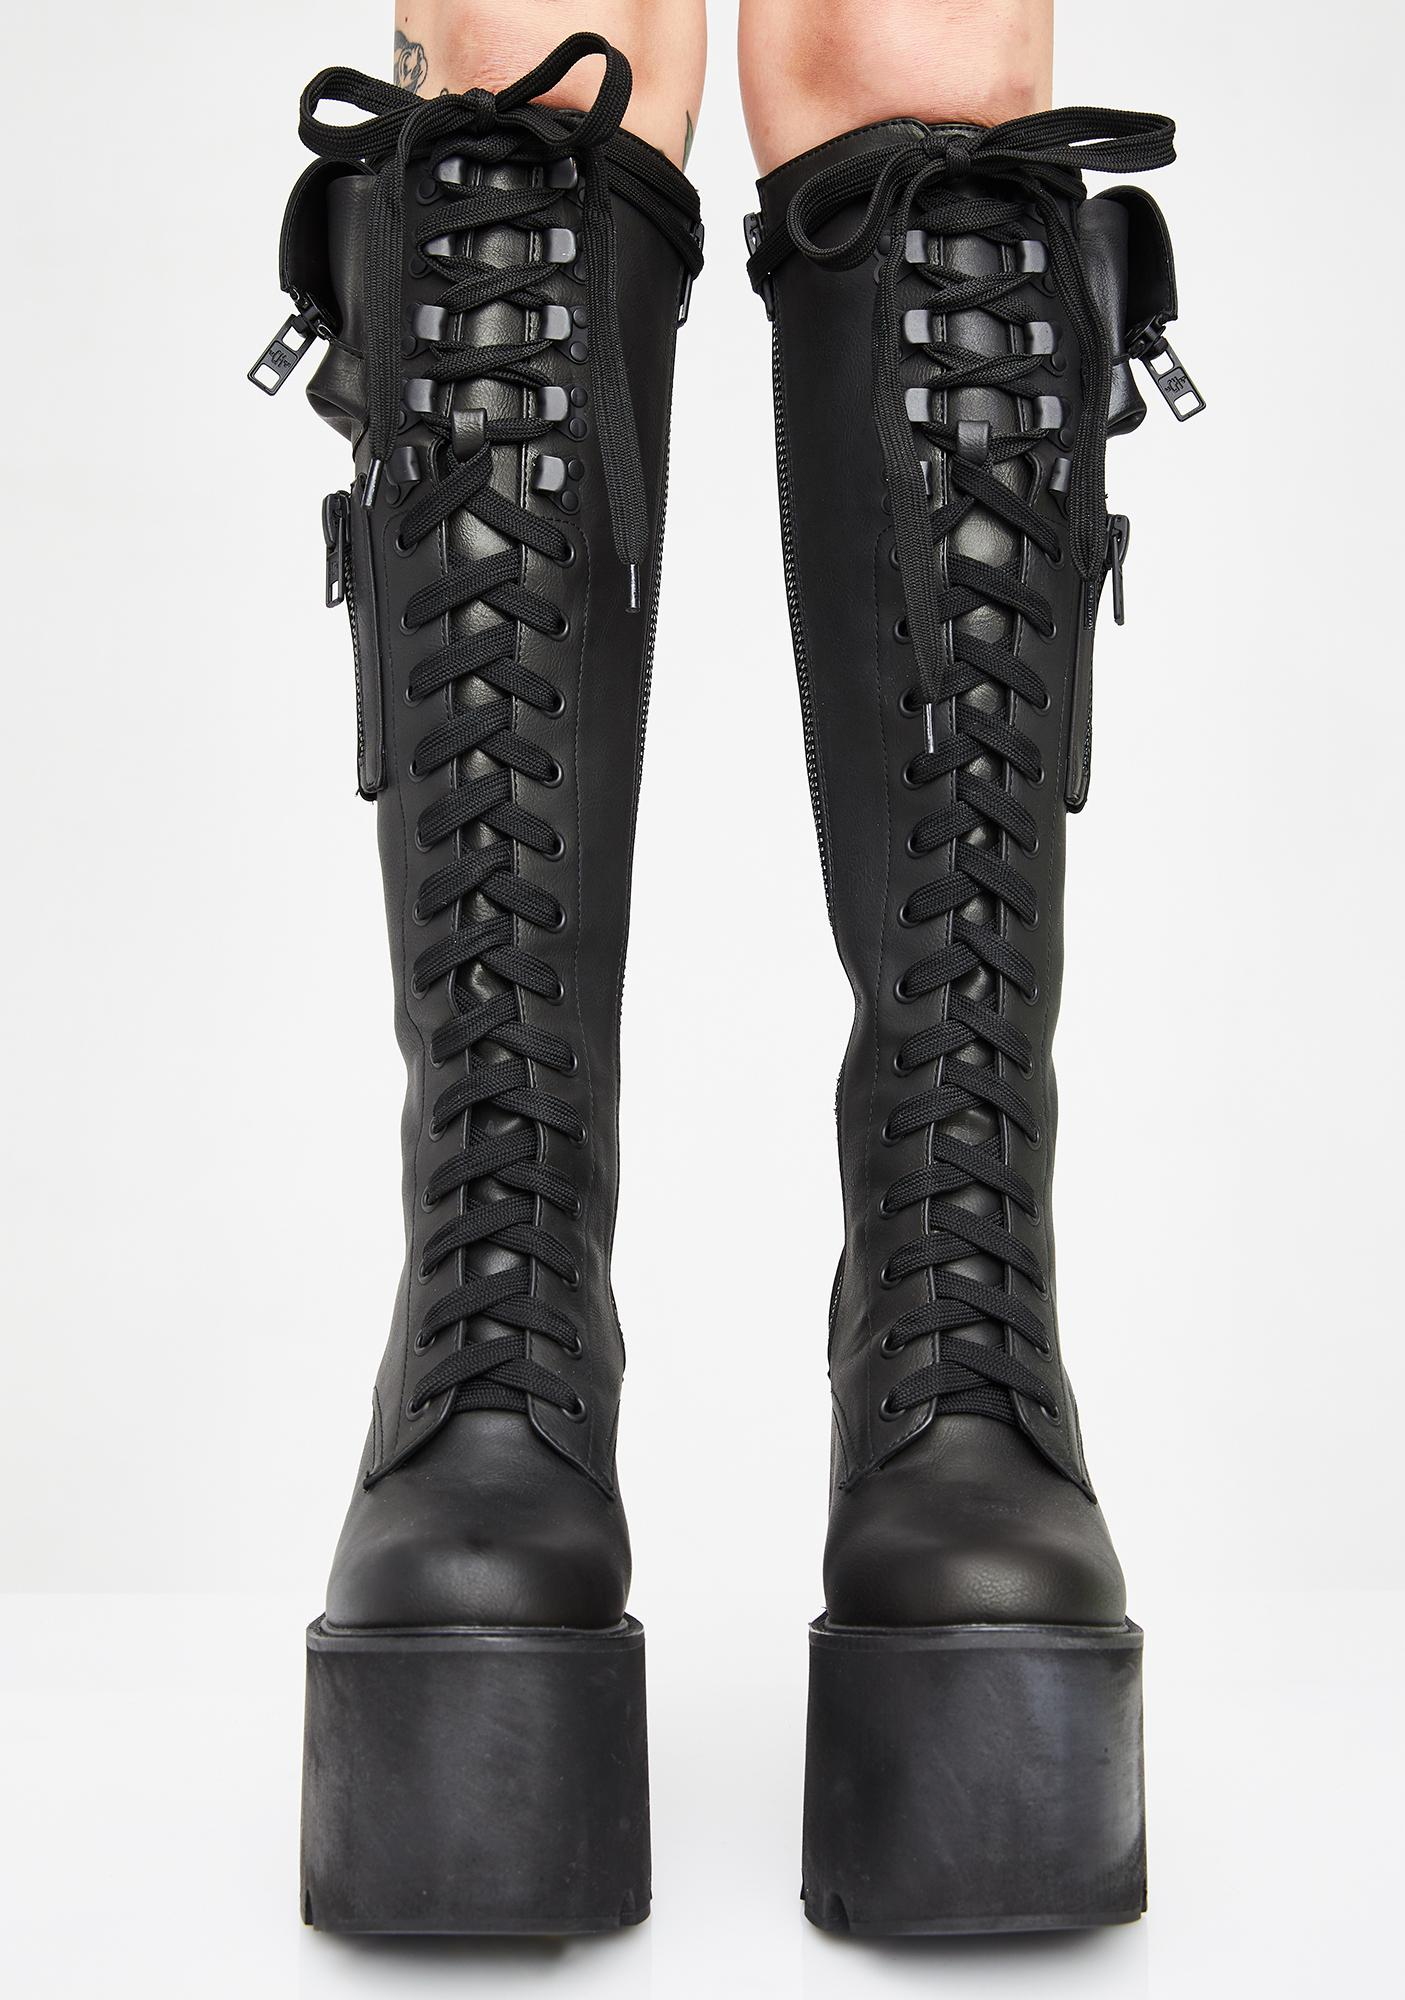 cdaca562e233e Current Mood Obsidian Platform Boots Black | Dolls Kill